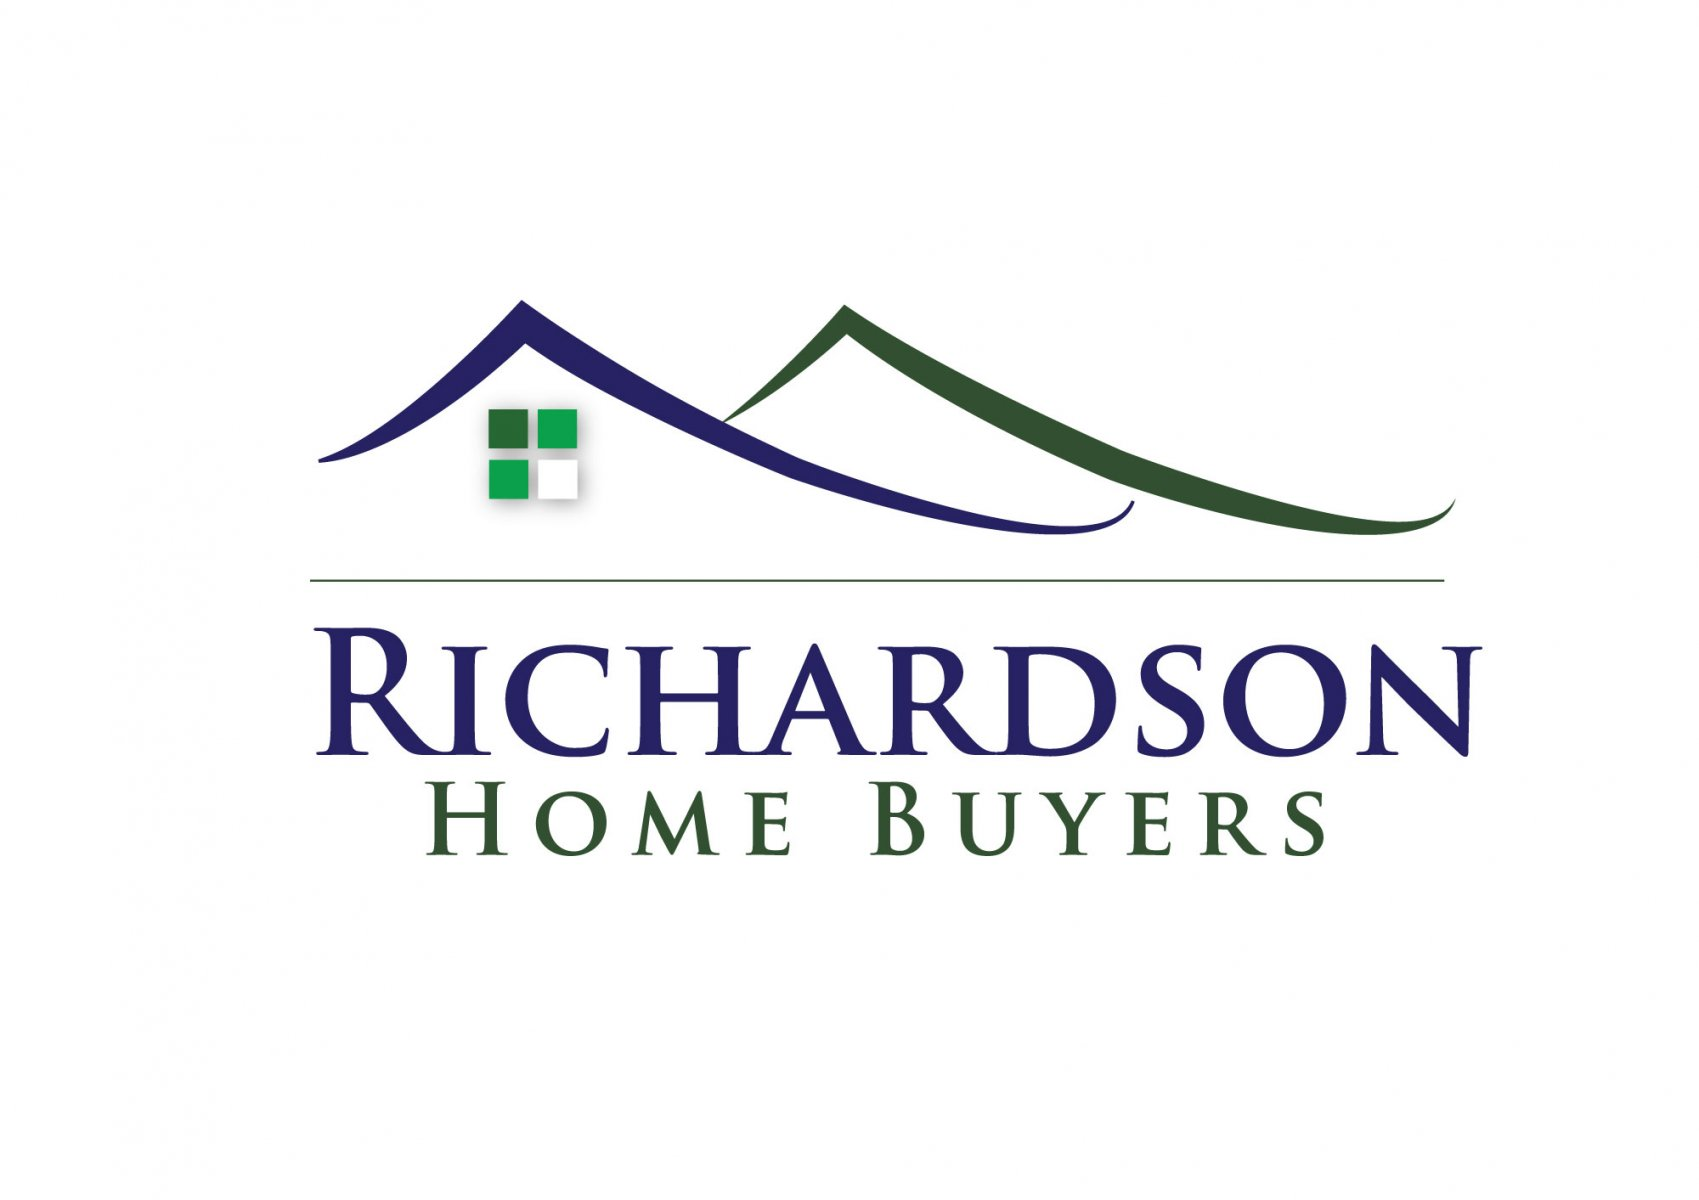 Inventory – Richardson Home Buyers, LLC. logo